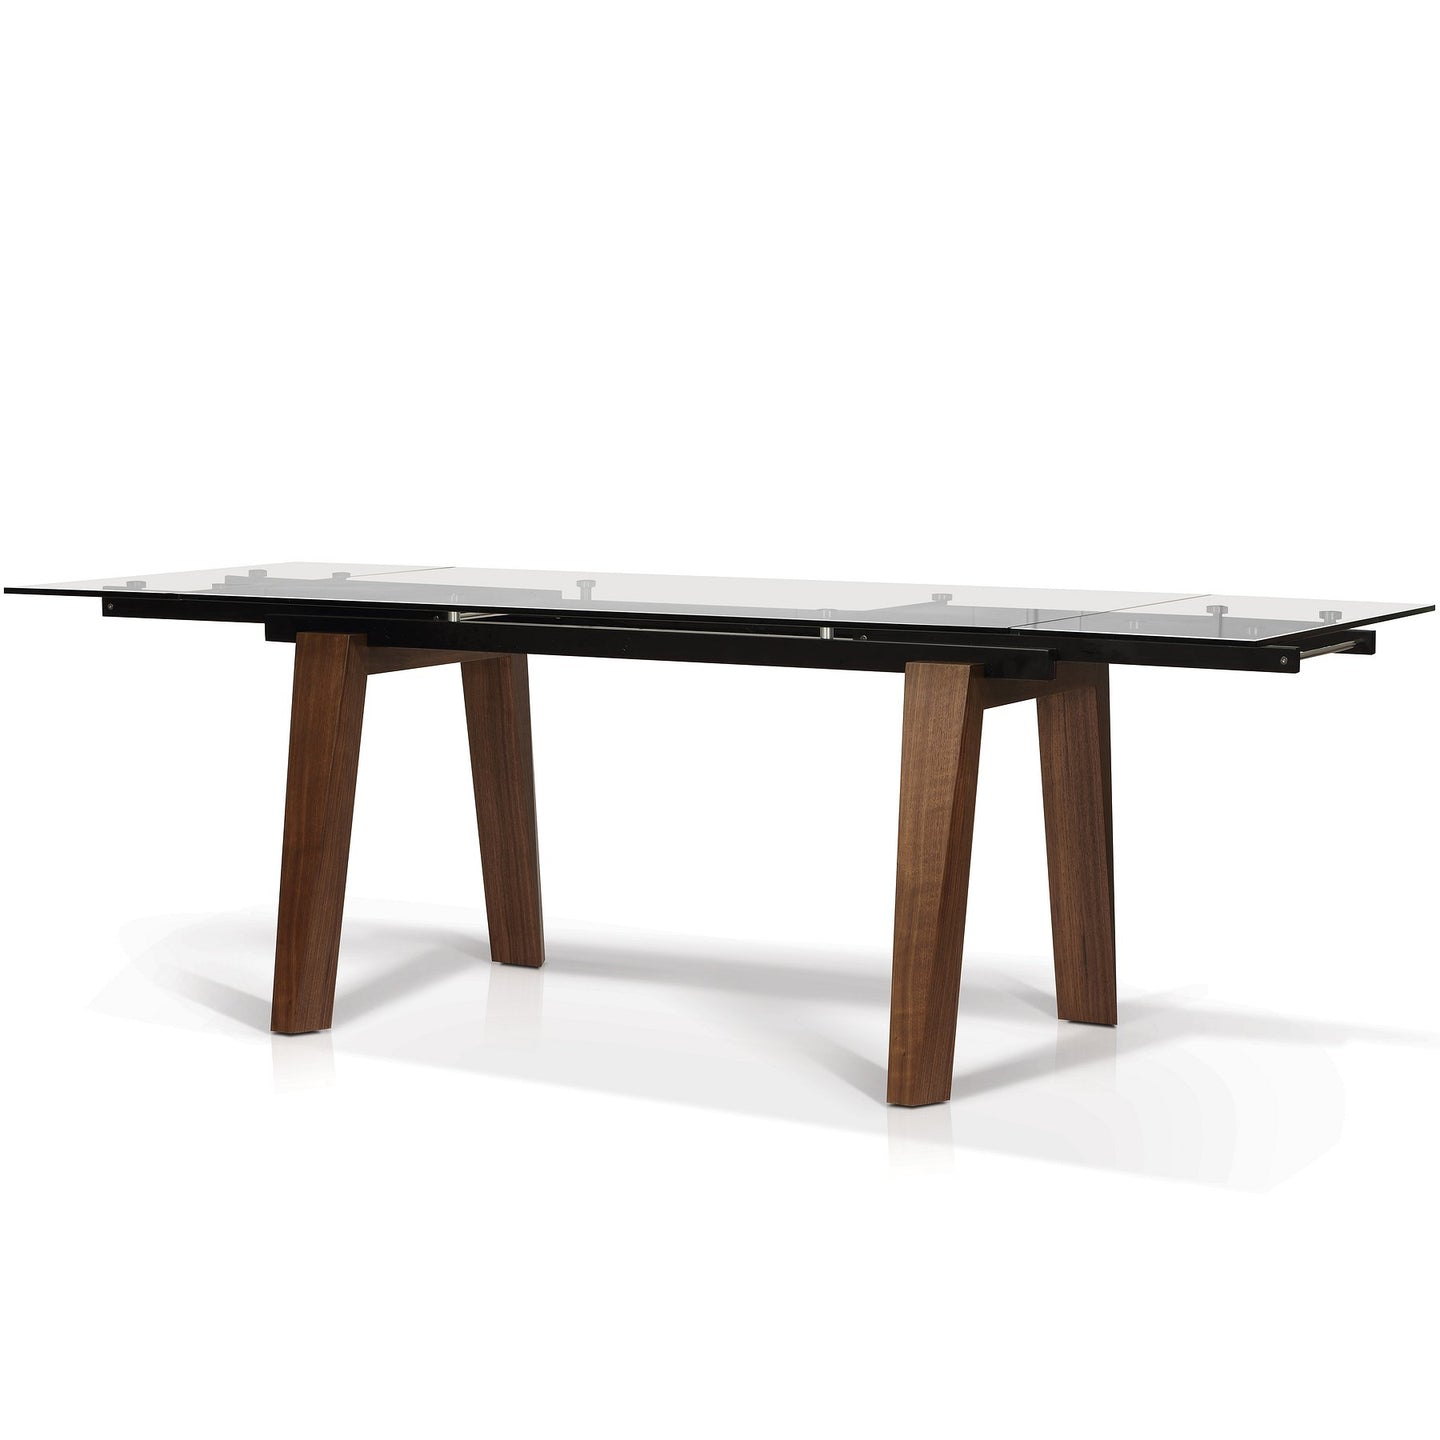 Abner rectangular glass top extension dining table - Dining